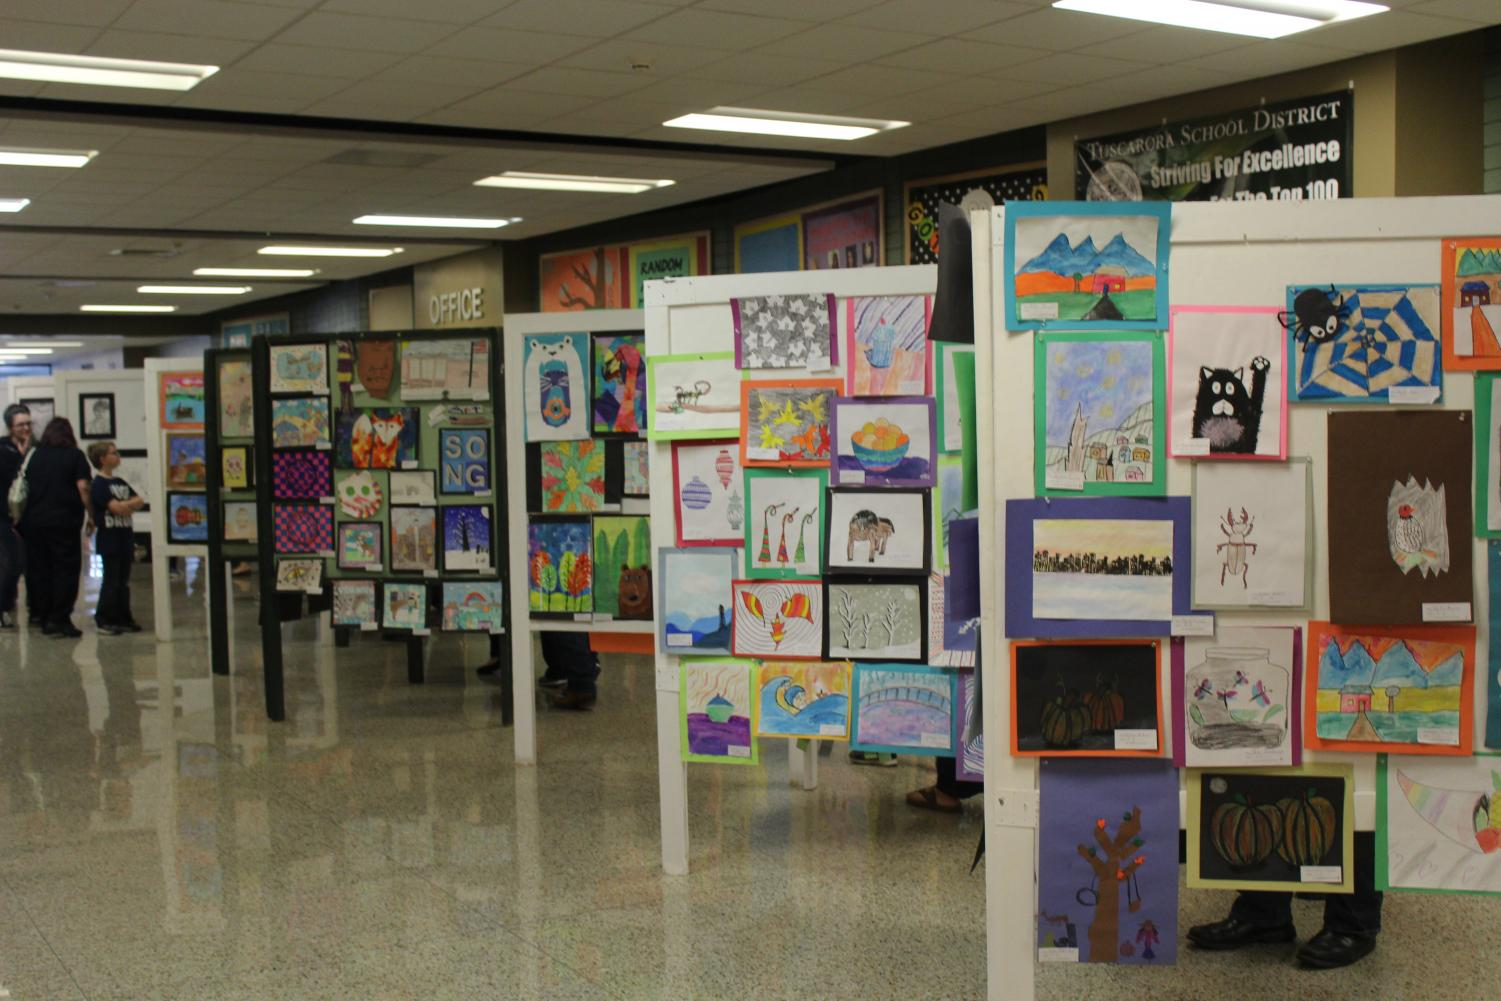 During Ensemble of the Arts, there was artwork accepted from all of the schools in the district.